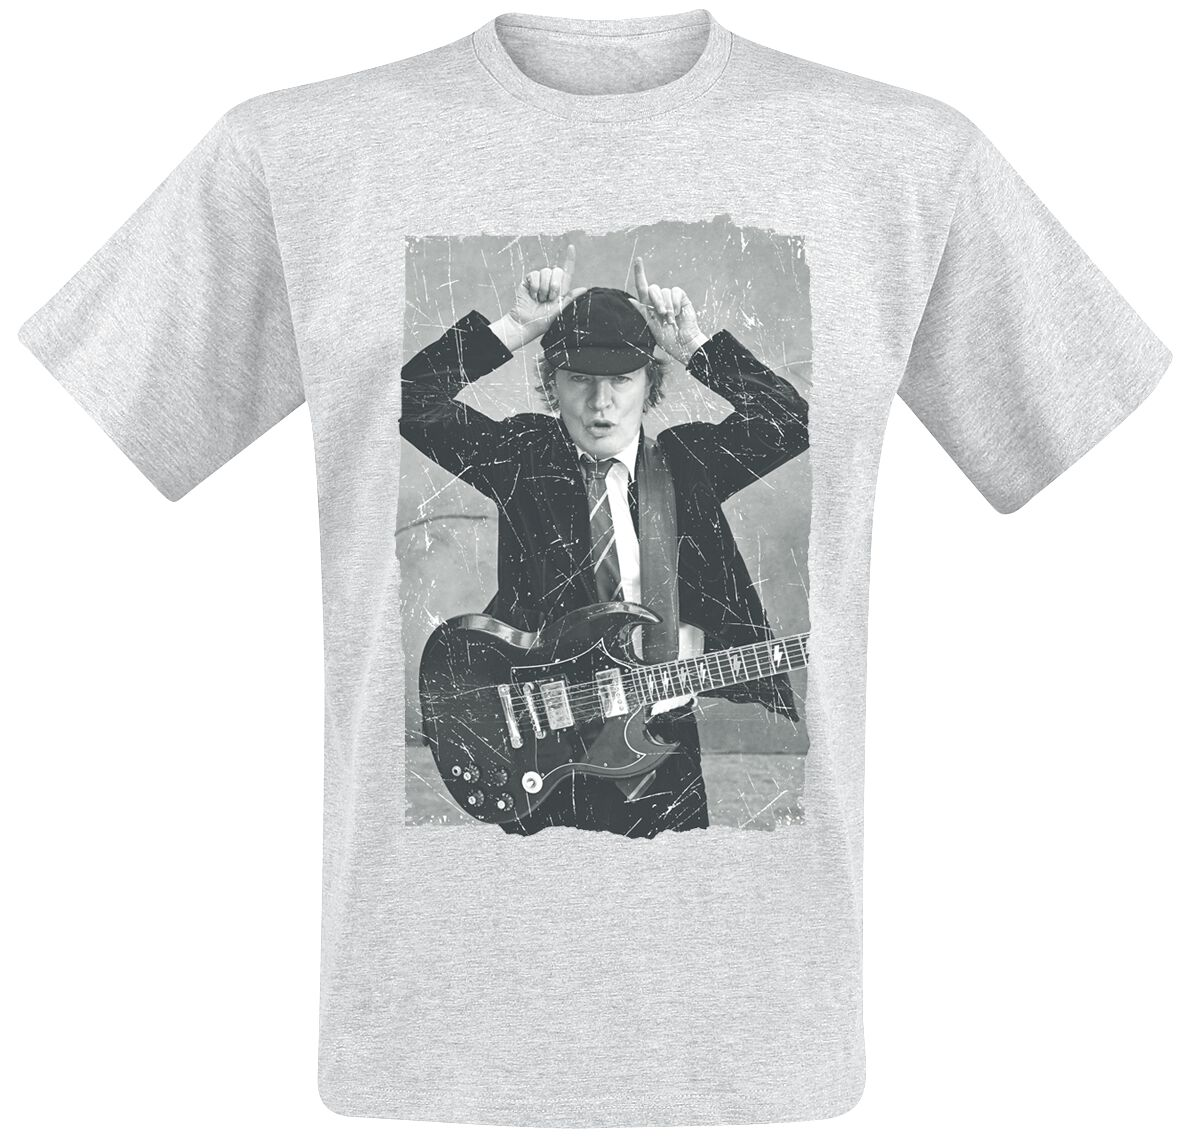 Image of AC/DC Angus Young Distressed Photo T-Shirt grau meliert